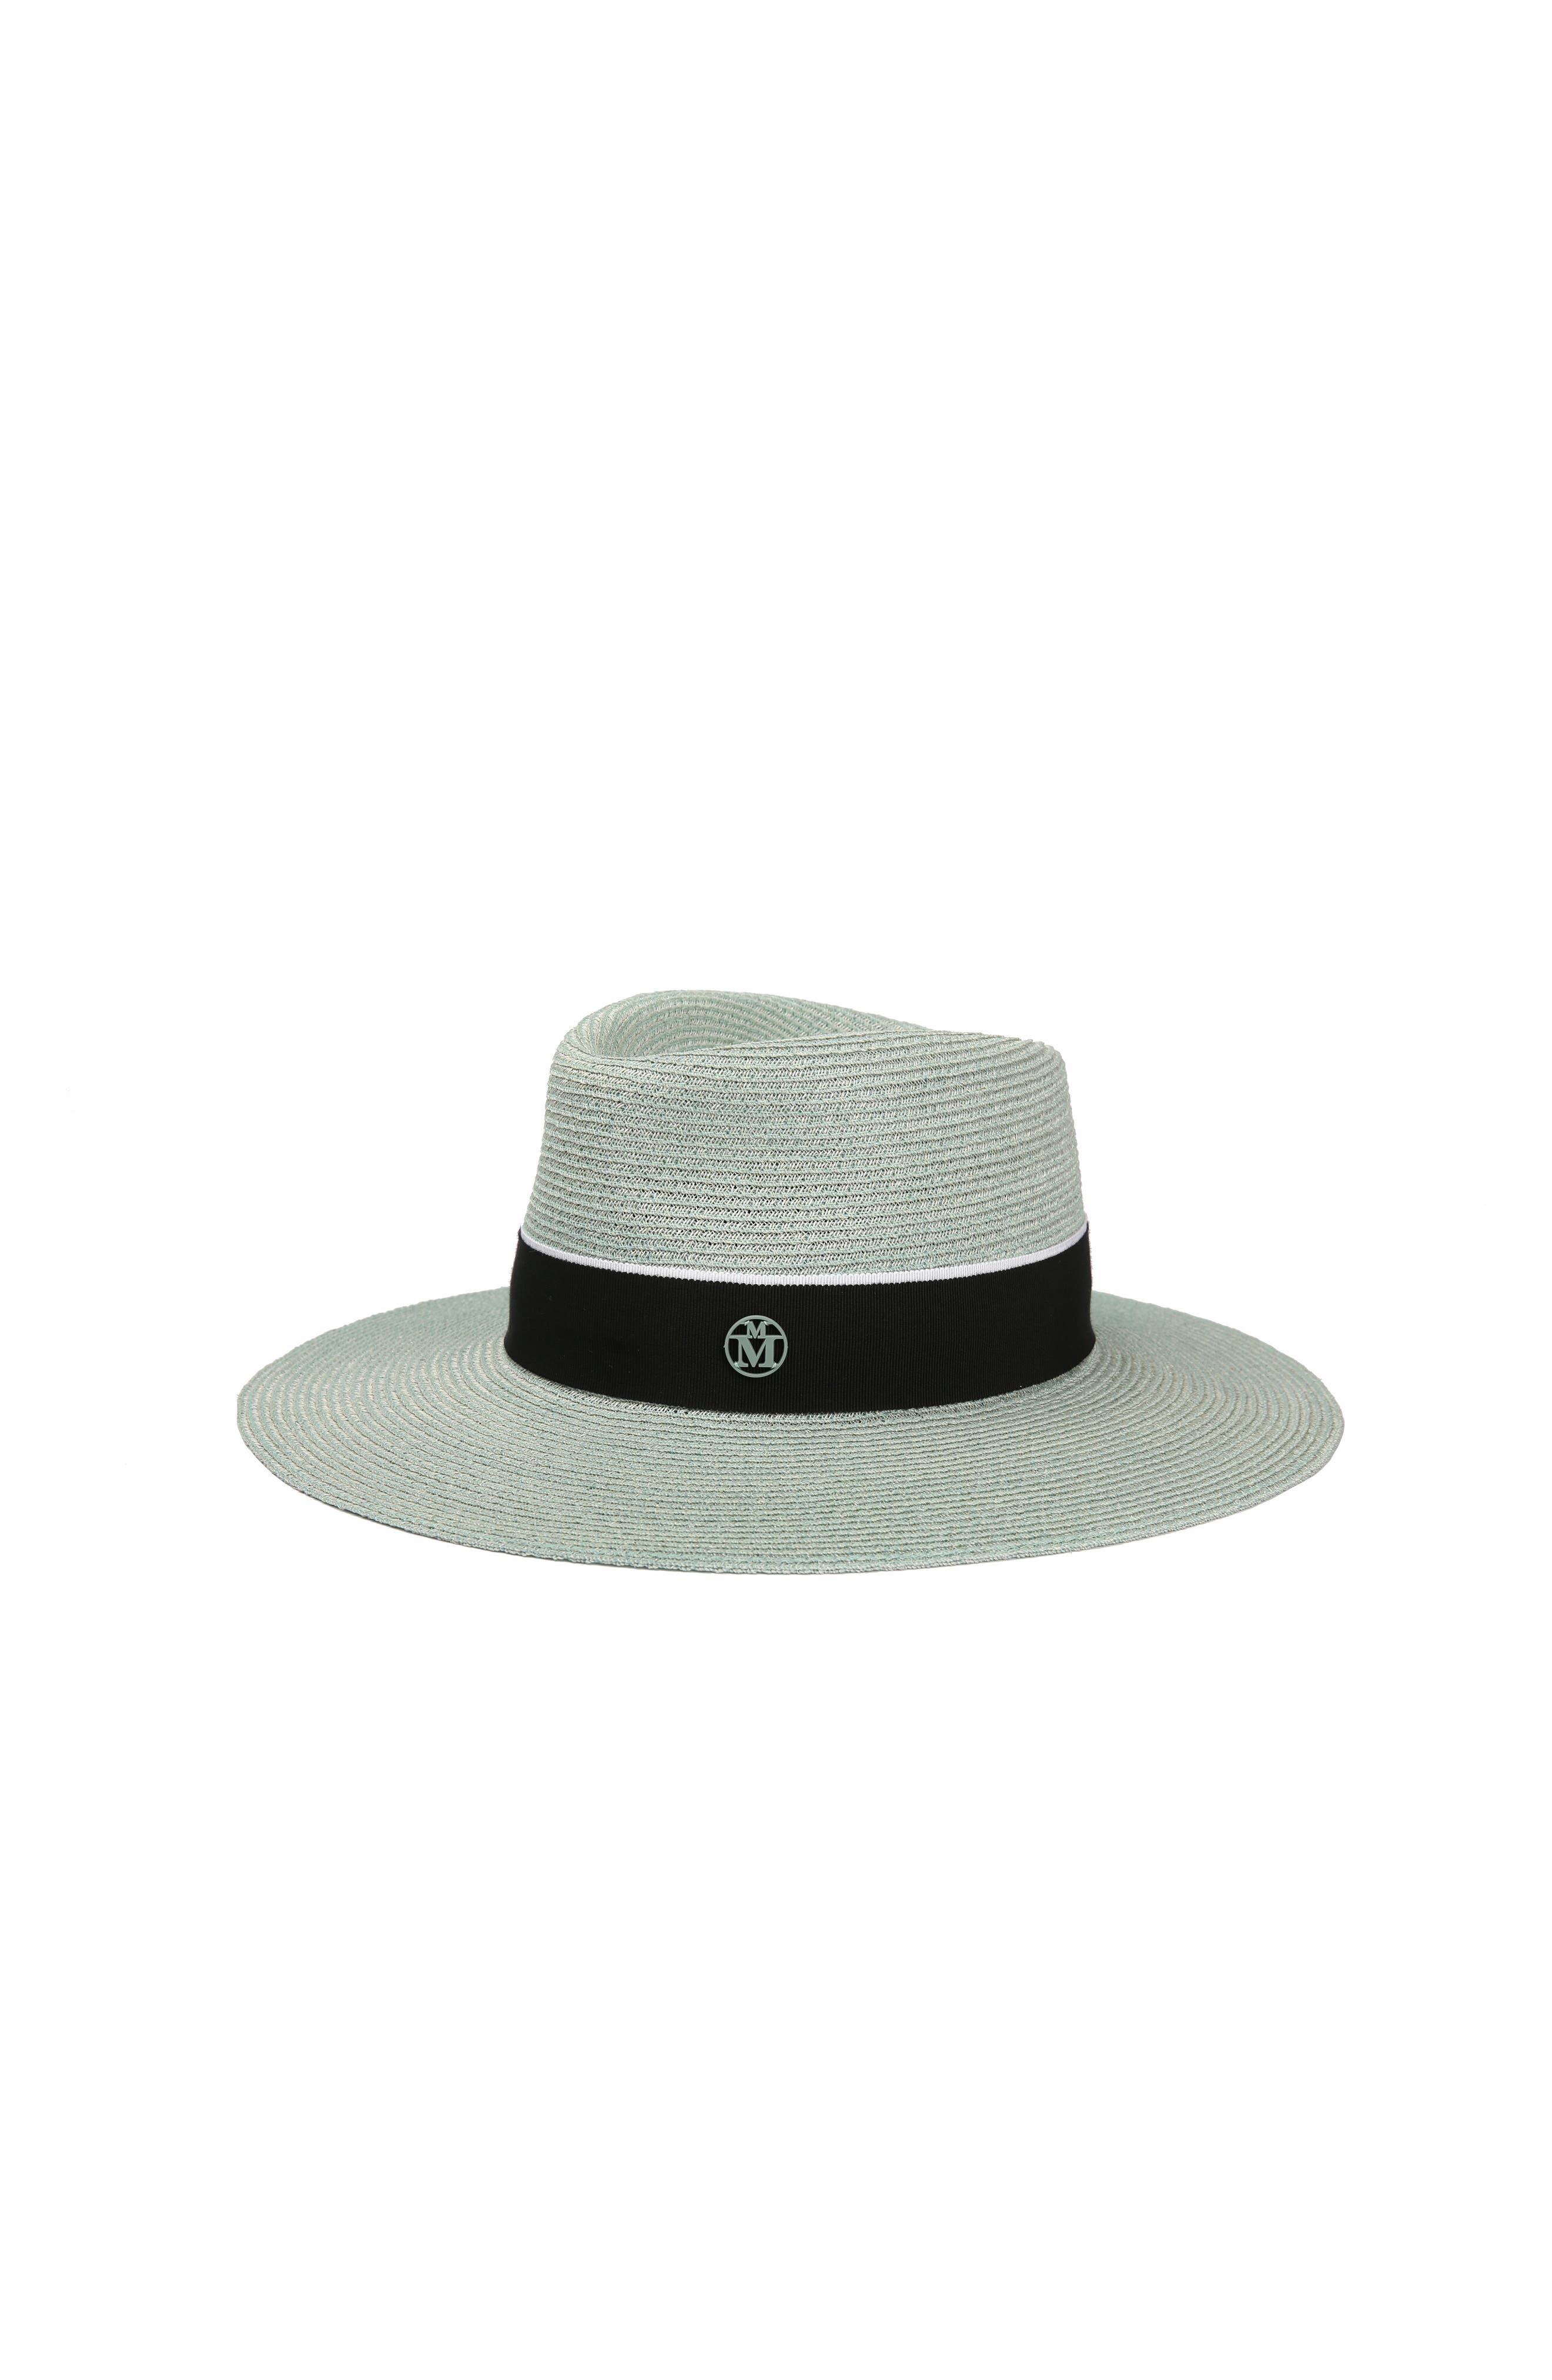 Charles Straw Hat,                         Main,                         color,